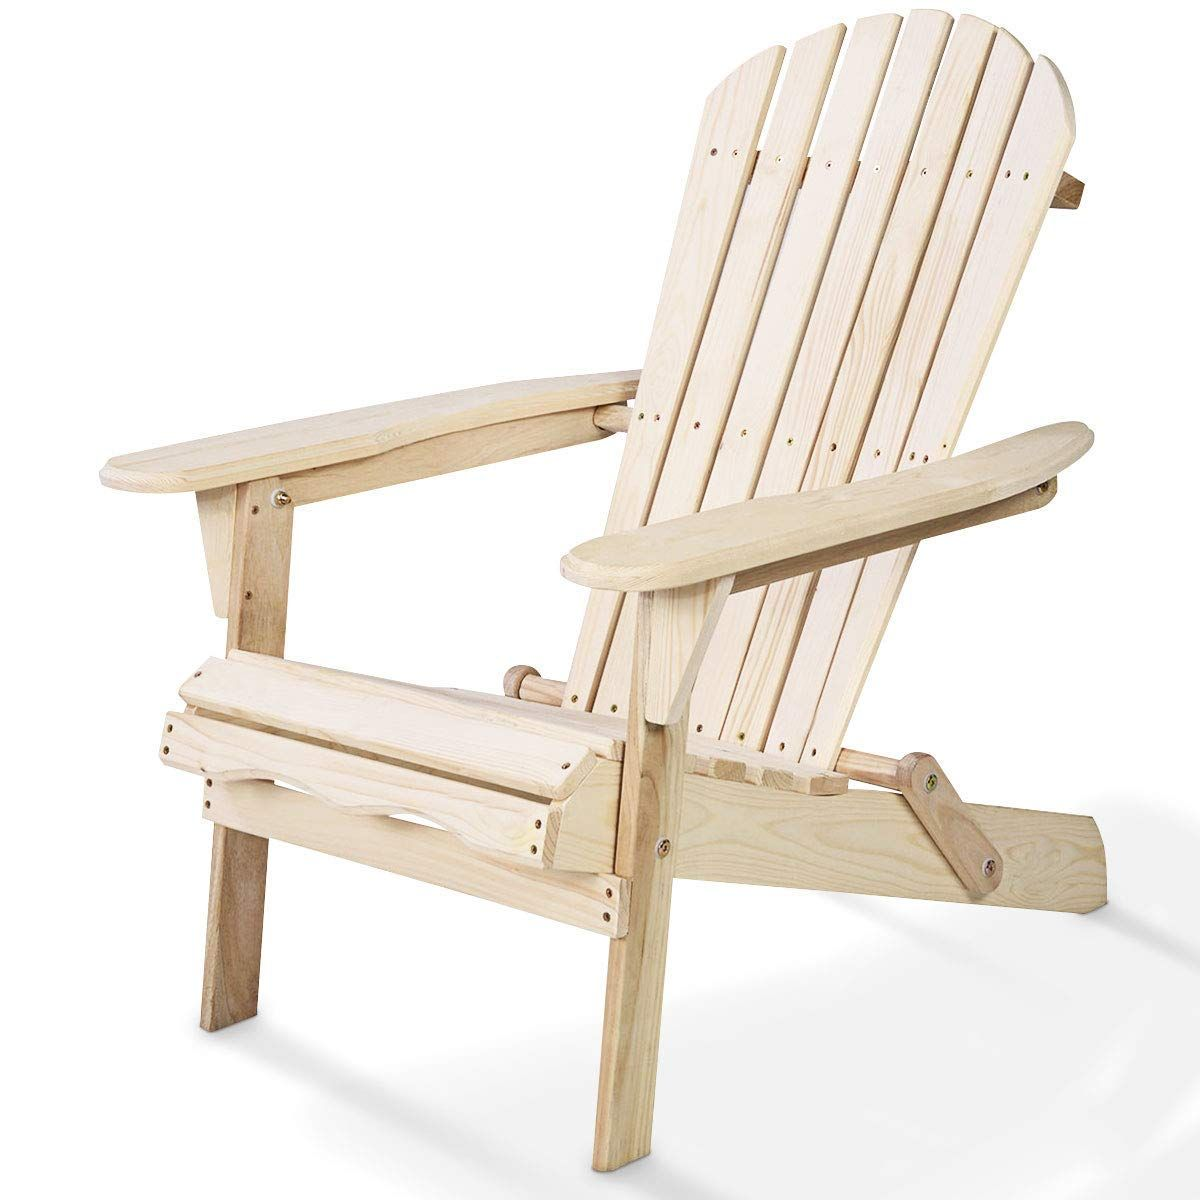 Adirondack Chairs For Sale In 2020 Adirondack Chairs Patio Wood Patio Furniture Garden Furniture Wood